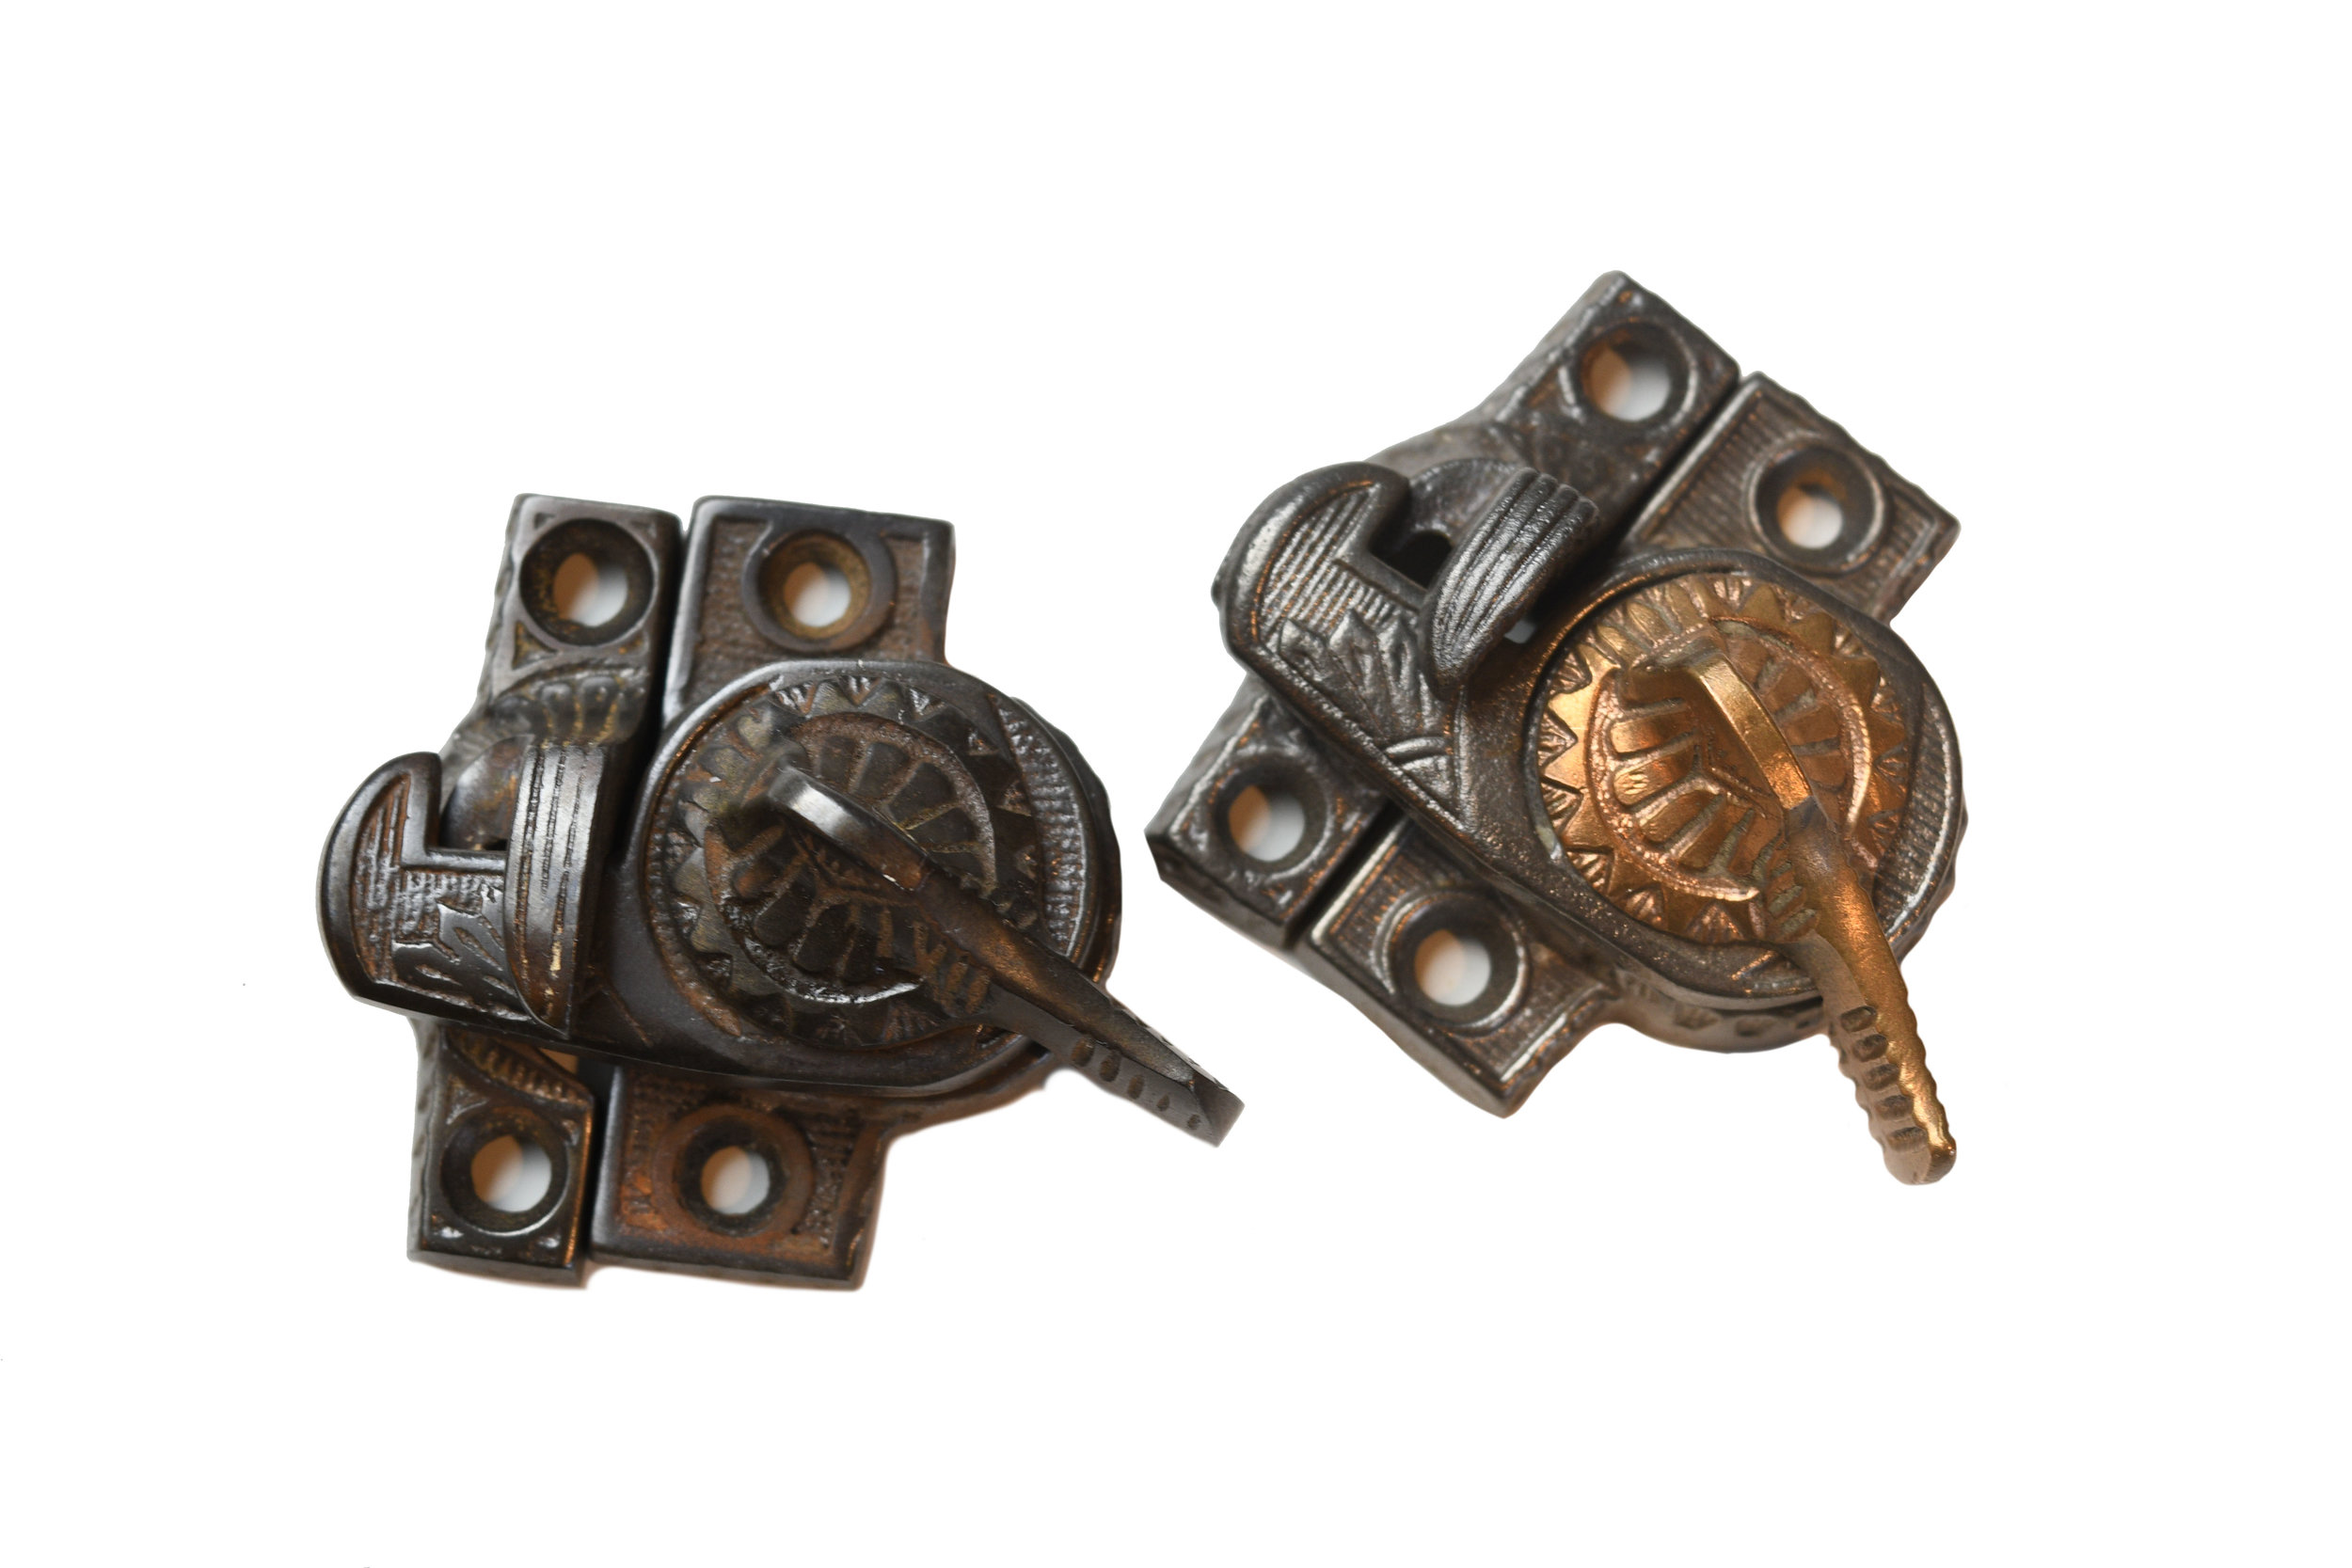 EAGLE CLAW SASH LOCKS AA# 44745   22 available in 2 varieties from $48.00 each